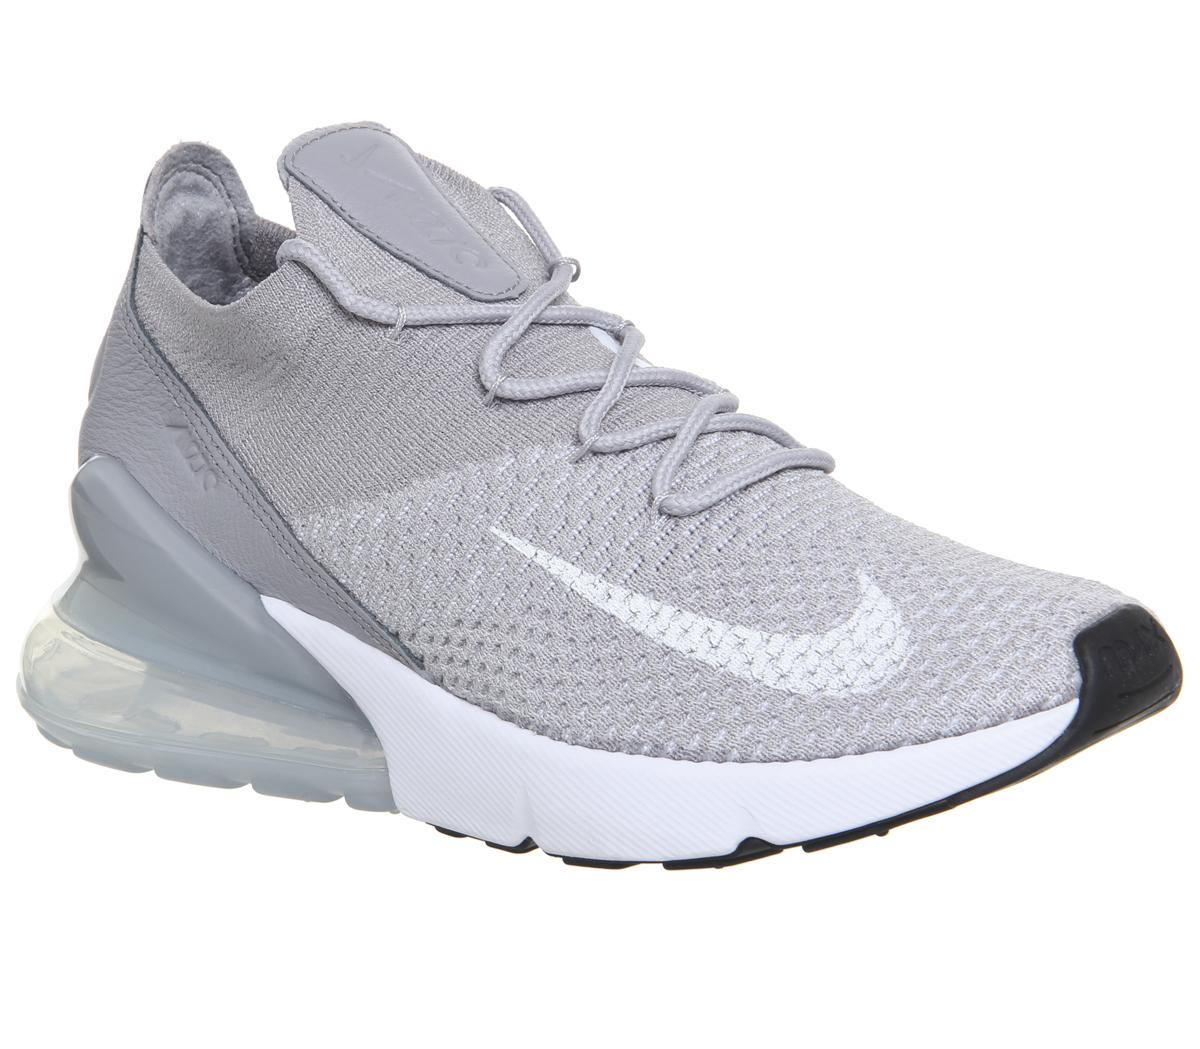 | NIKE Men's Air Max 270 Flyknit, WhitePure